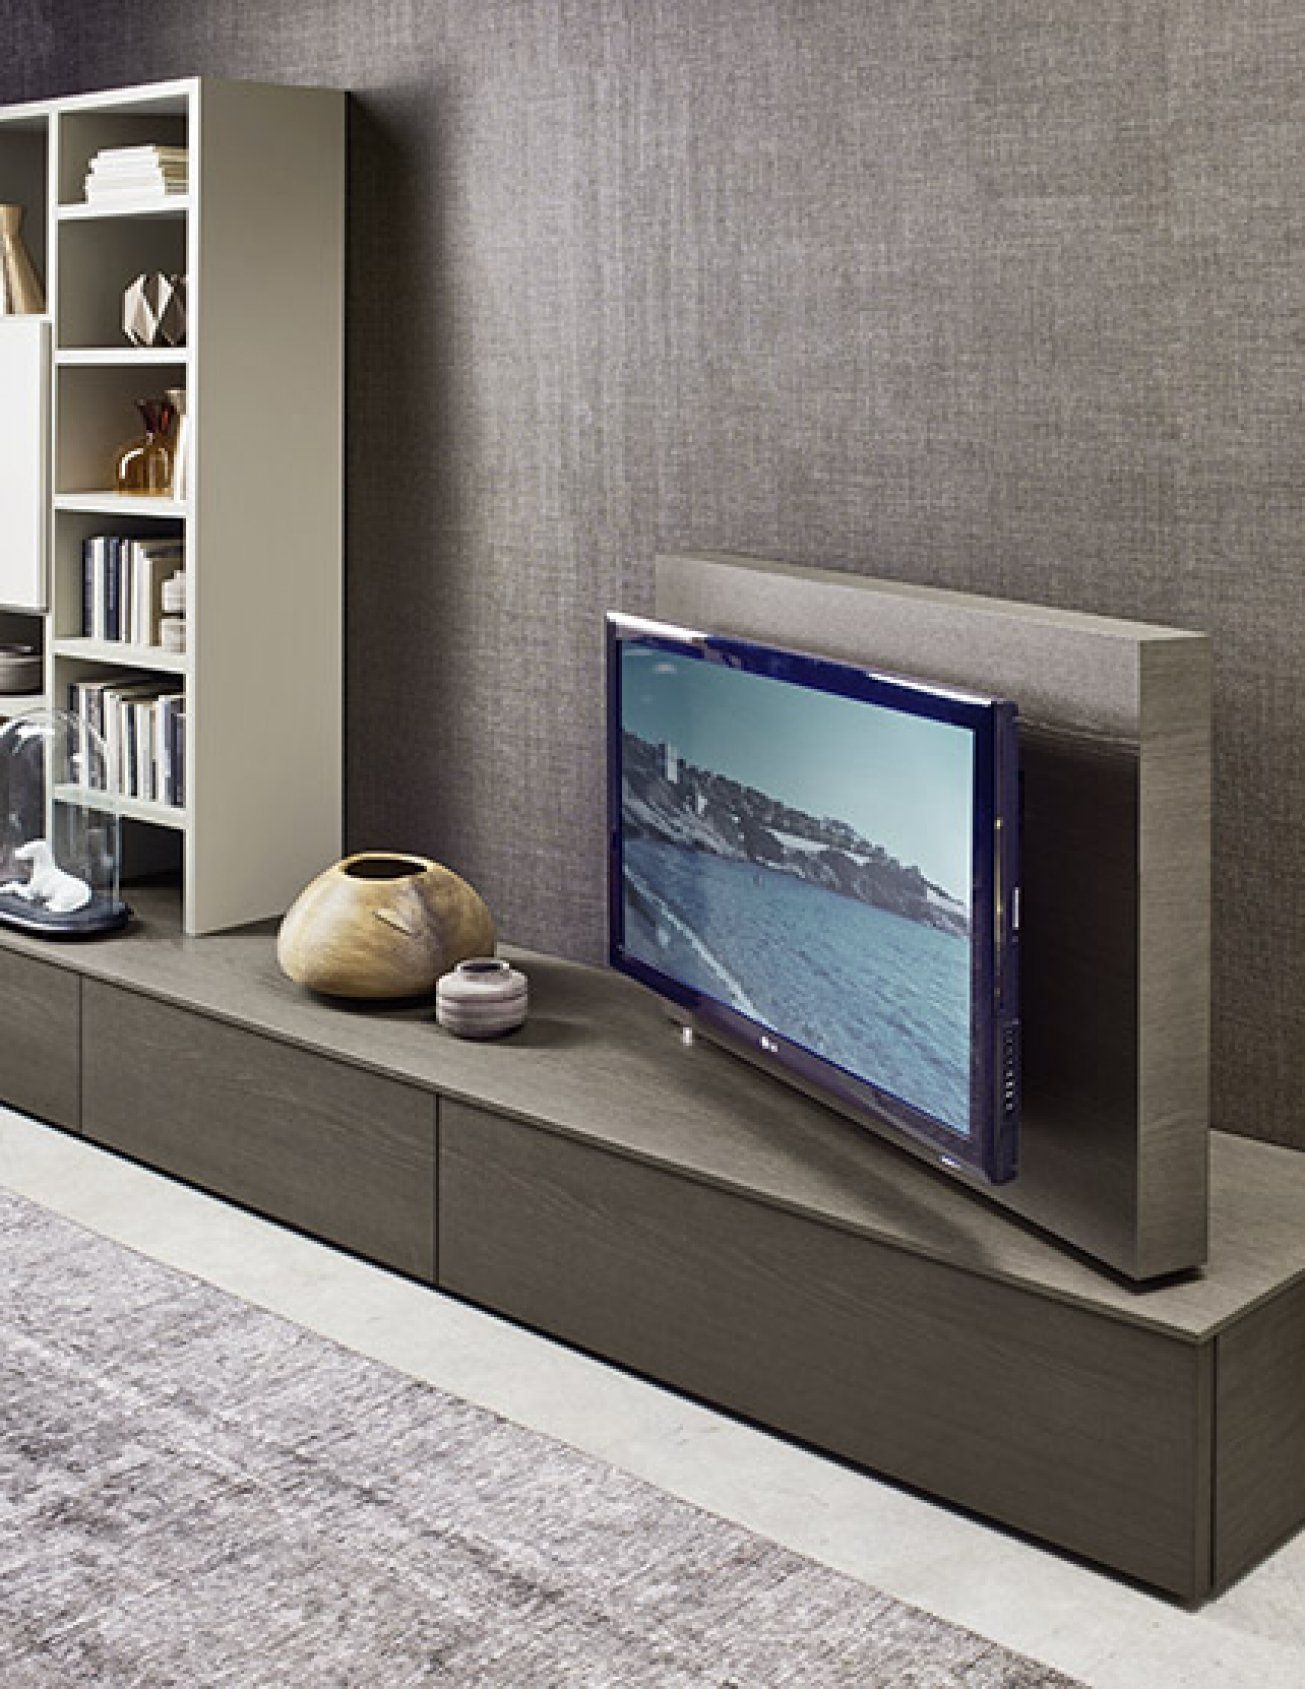 The kronos s features a swivel tv stand allowing you to view your